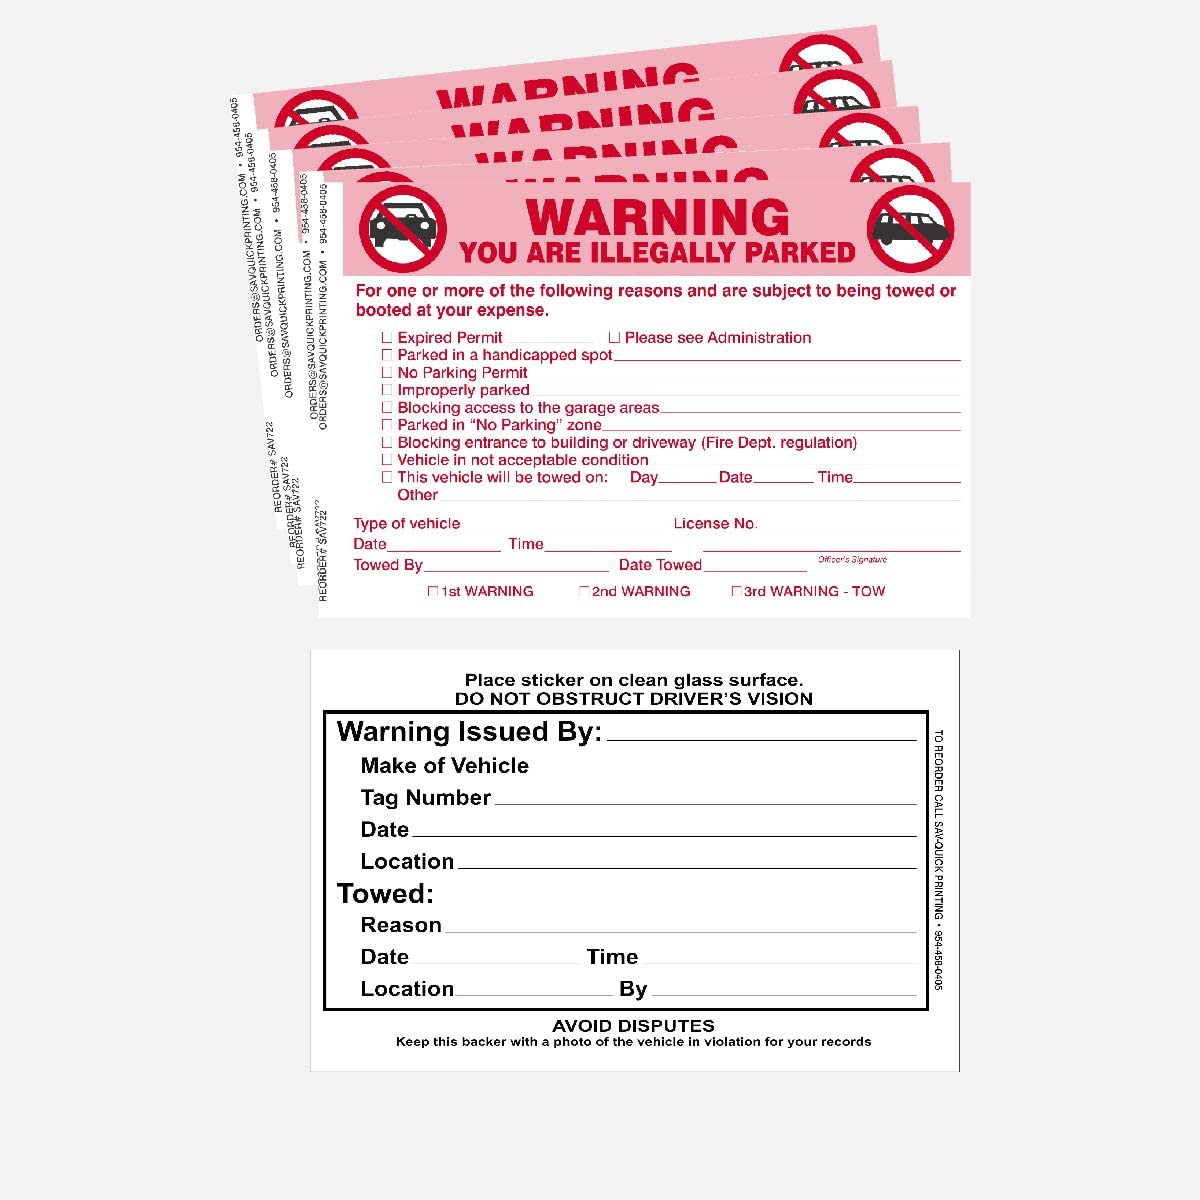 Scrap to Remove Stickers Neon Green 5.5 x 7.5 50 Parking Violation Sticker Parking Violation Notice No Parking Warning Stickers Made in The U.S.A. Vehicle Illegally Parked Tow Notice